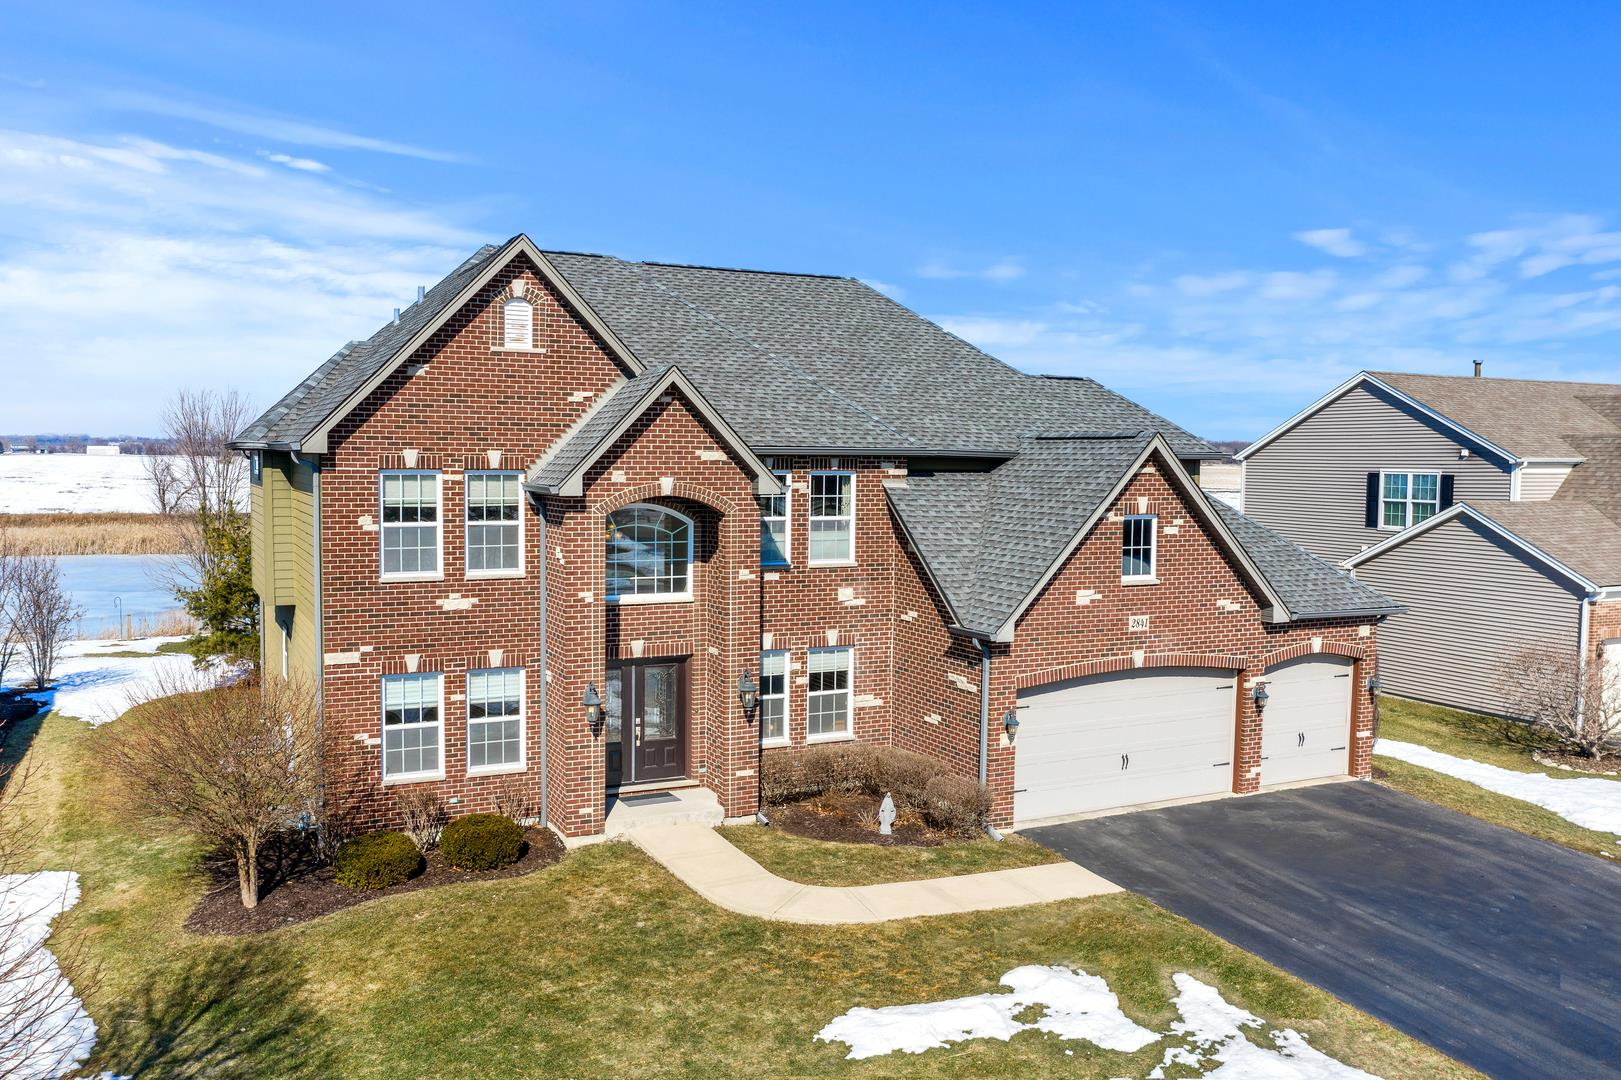 2841 Sterkel Road, North Aurora, IL 60542 - #: 11009832